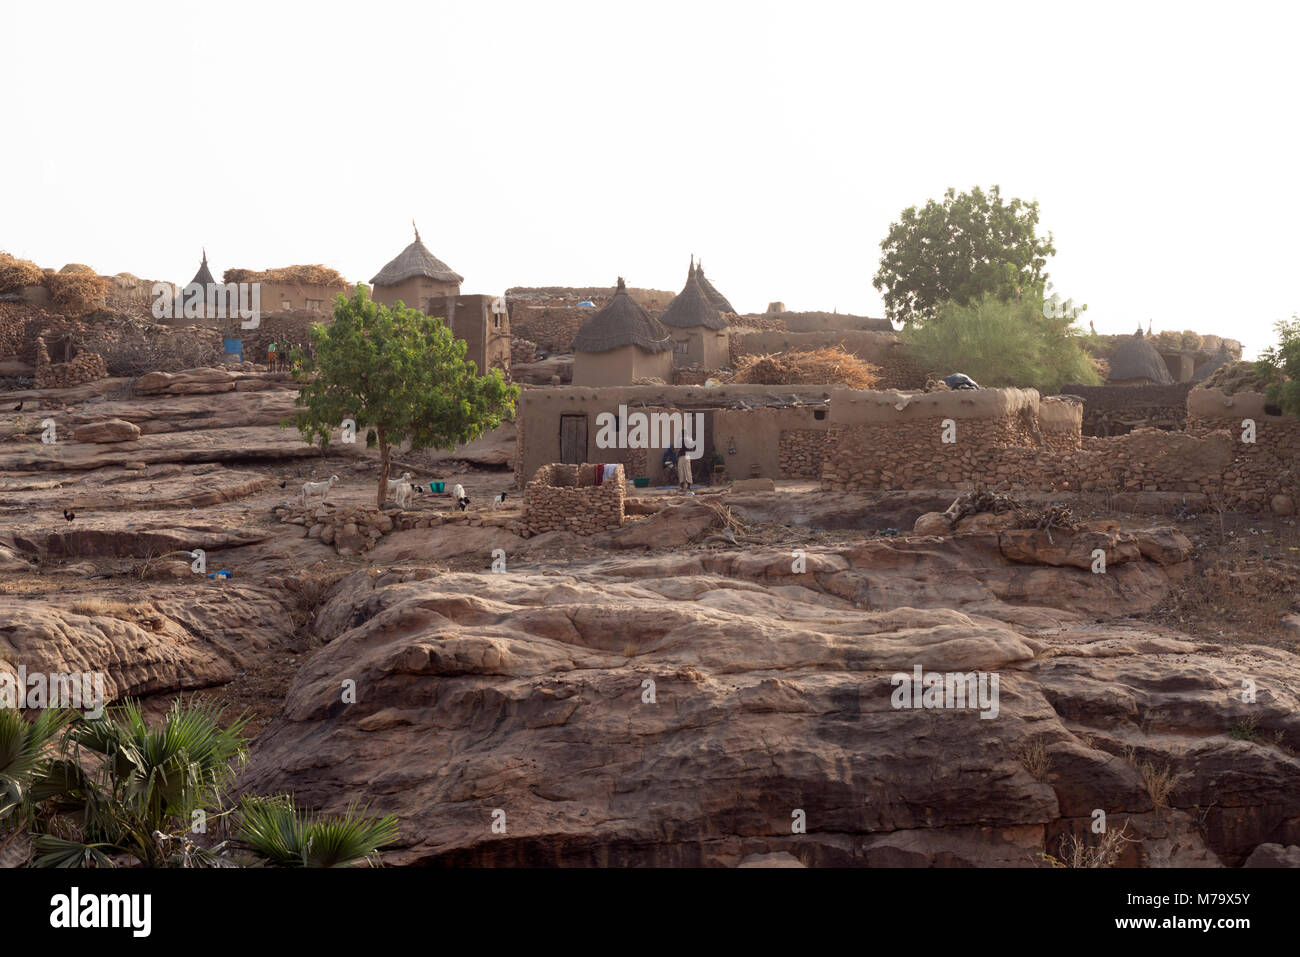 A typical clifftop village in Dogon country, Mali, West Africa - Stock Image